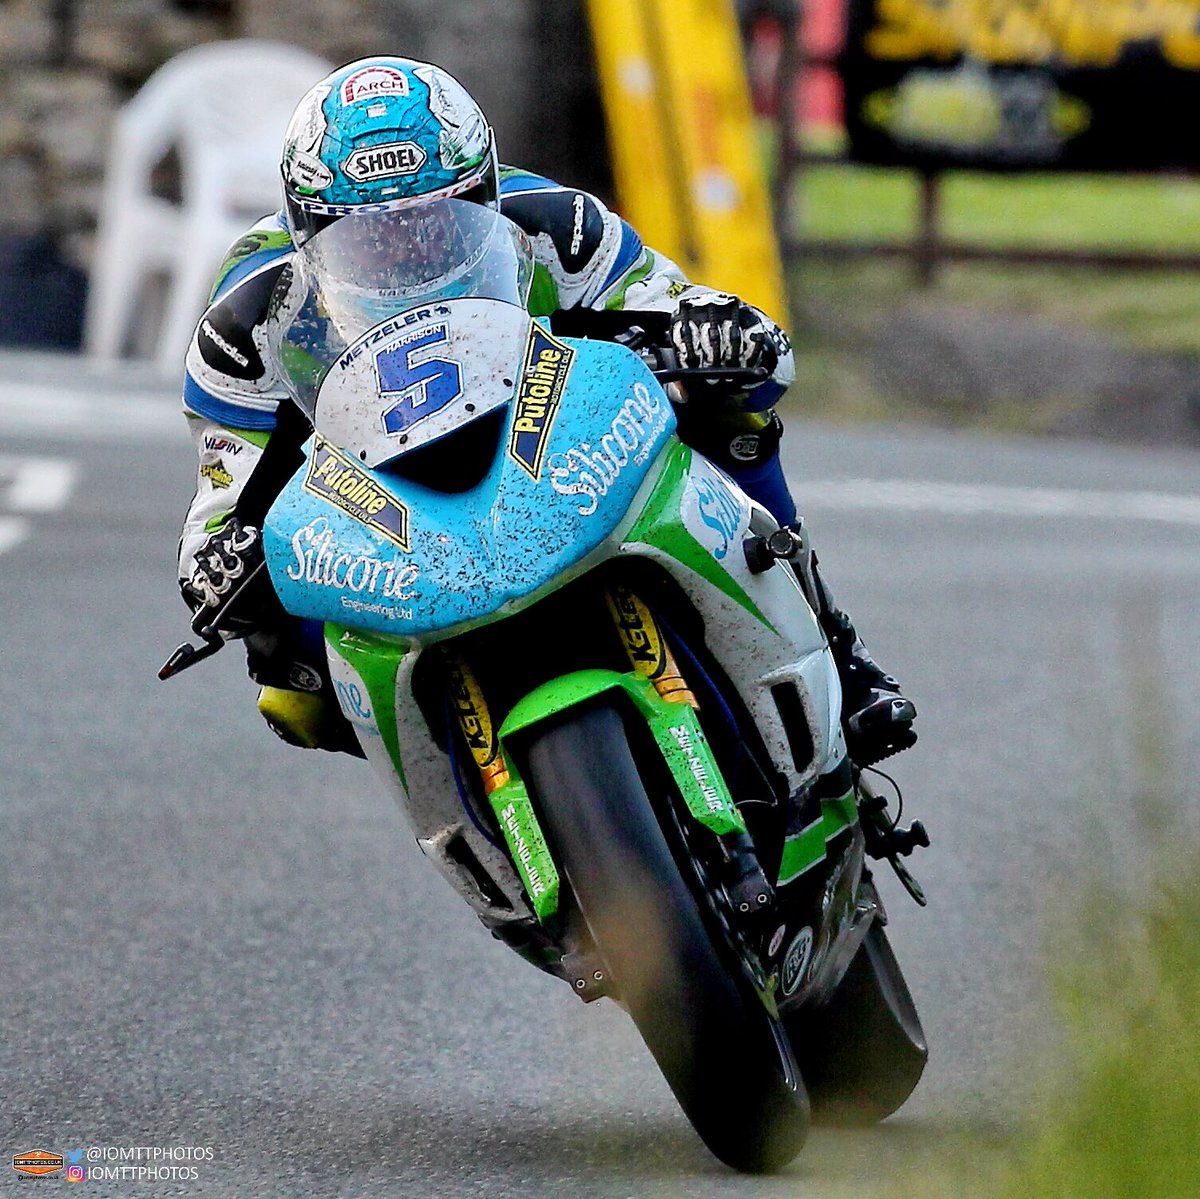 test Twitter Media - Pics of @deanharrisonTT from 1st practice #iomtt2018 #iomtt https://t.co/W2R5M9iQea